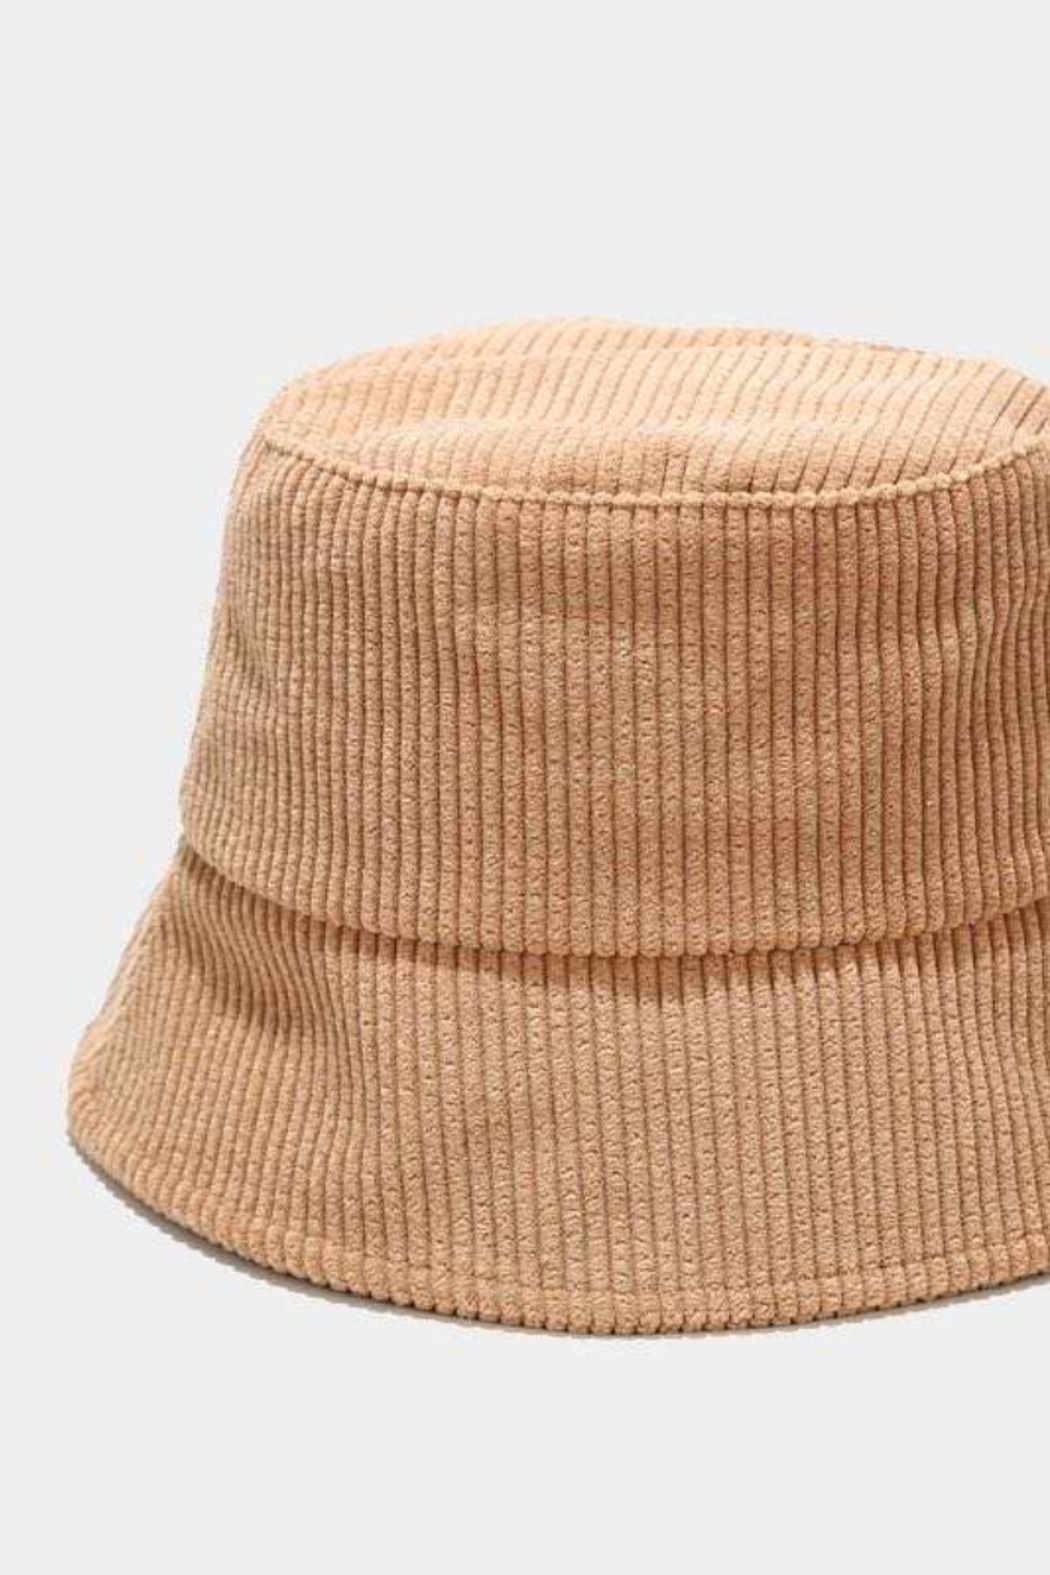 Virginia Wolf Cate Corduroy Bucket Hat - Front Cropped Image